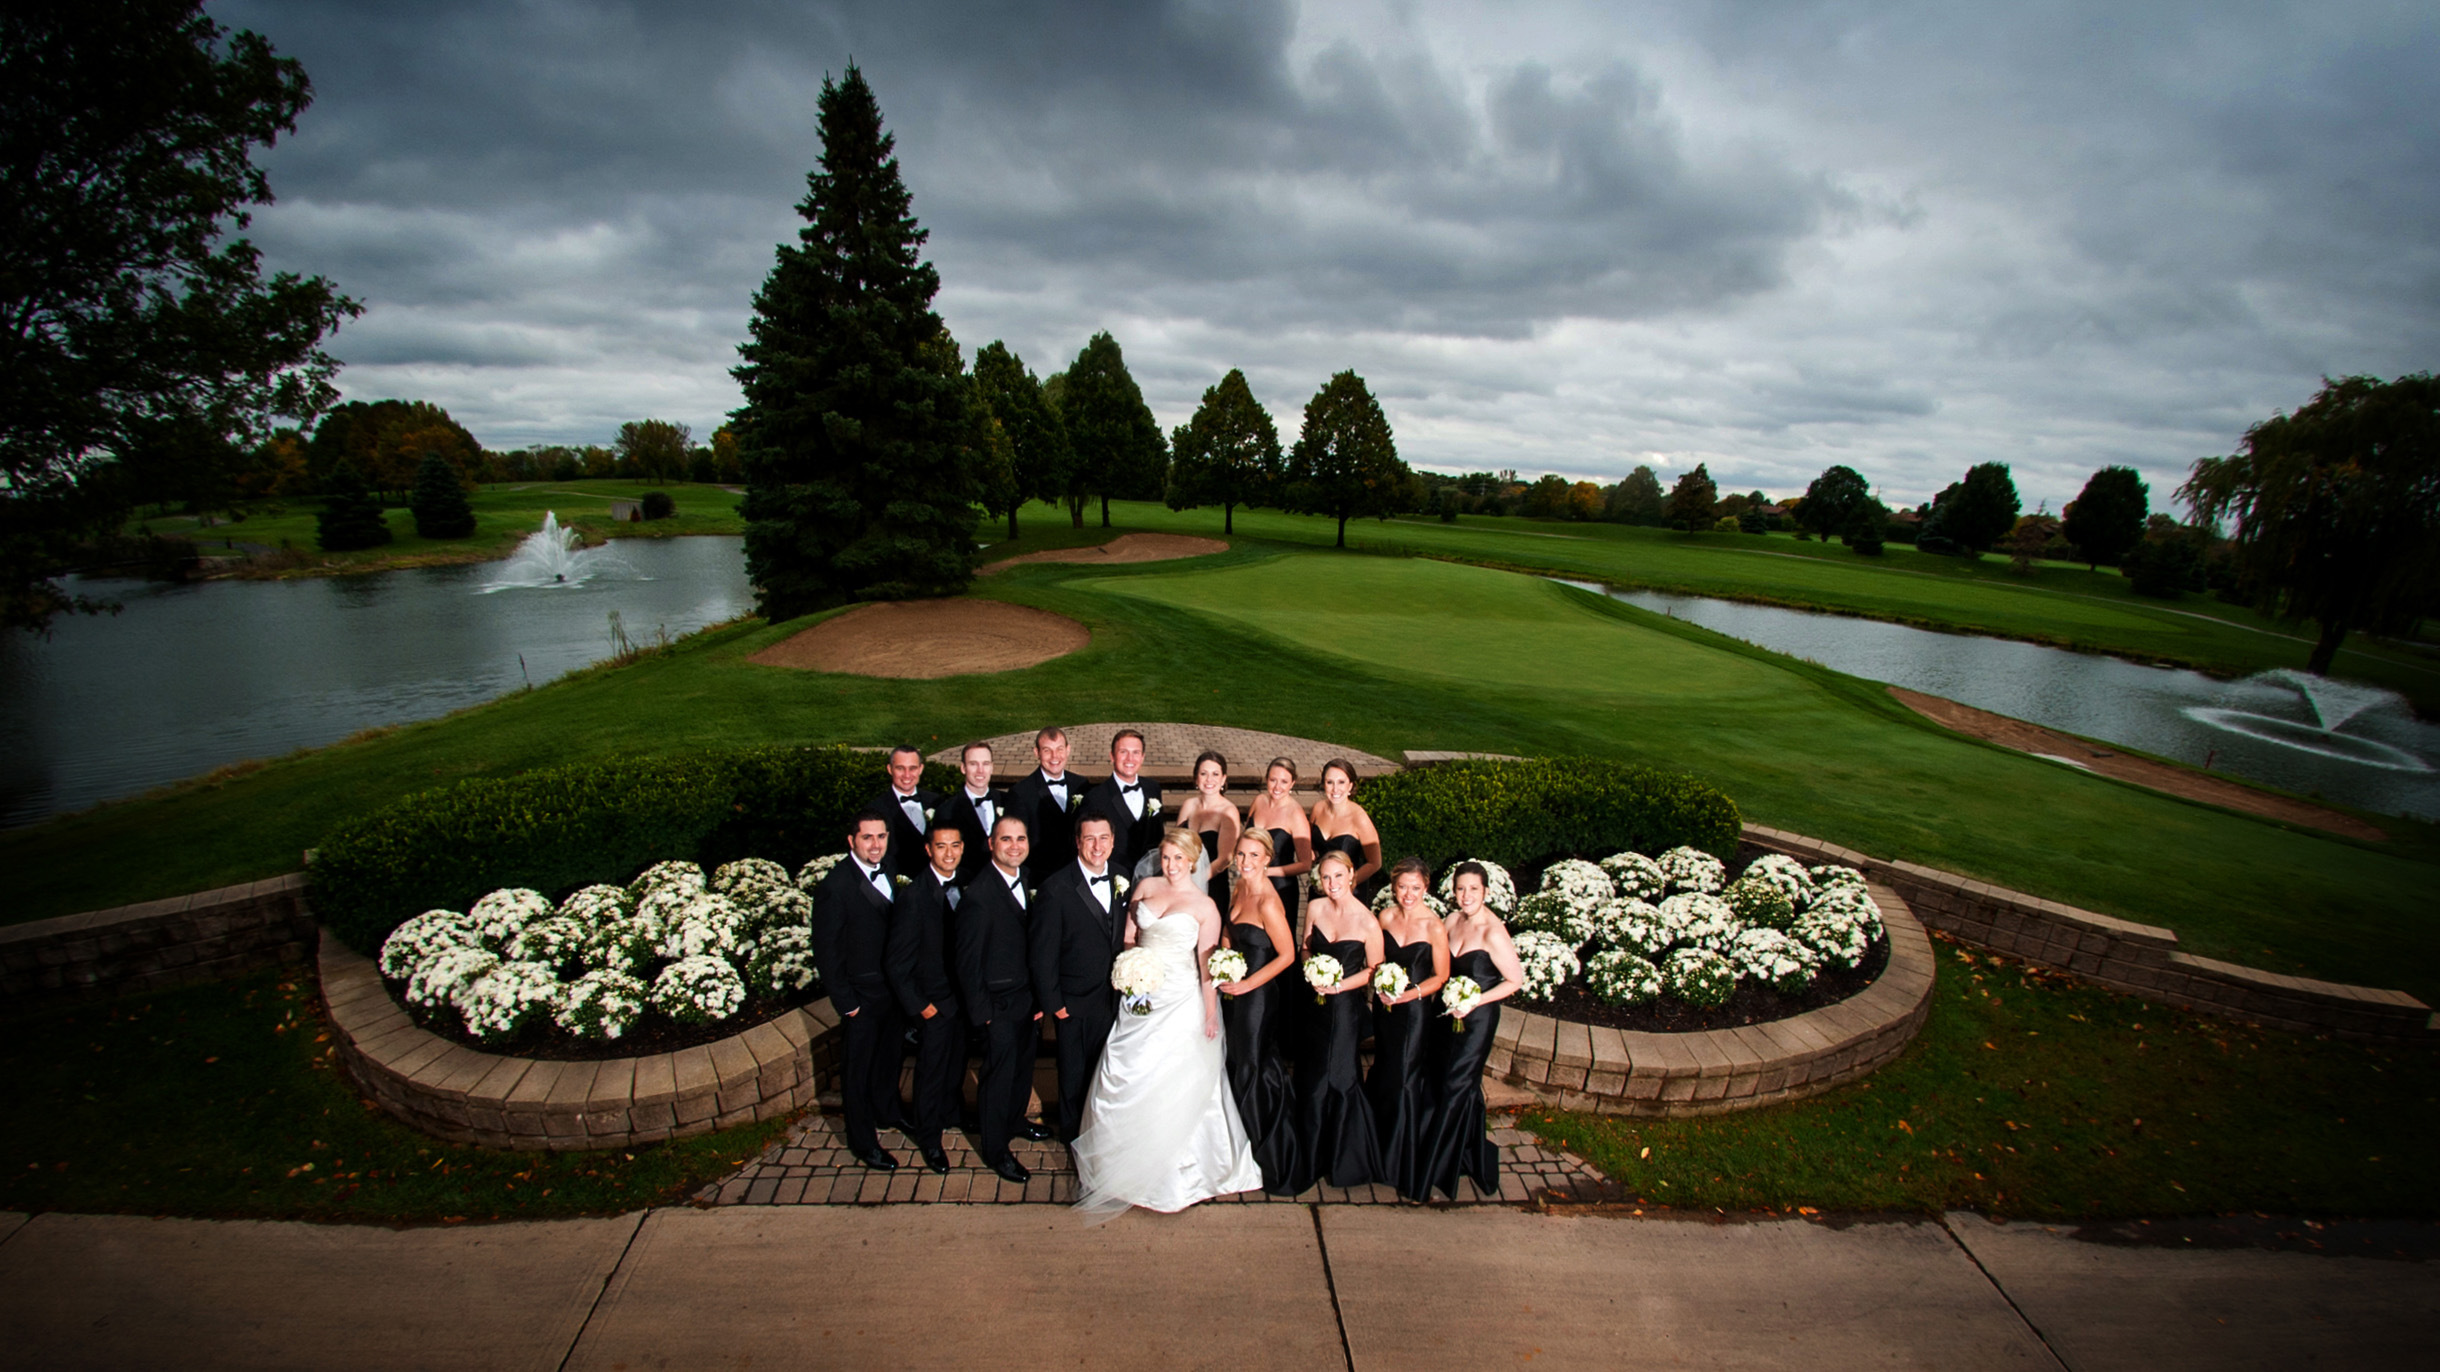 Dramatic bridal party photo on golf course before the rain storm